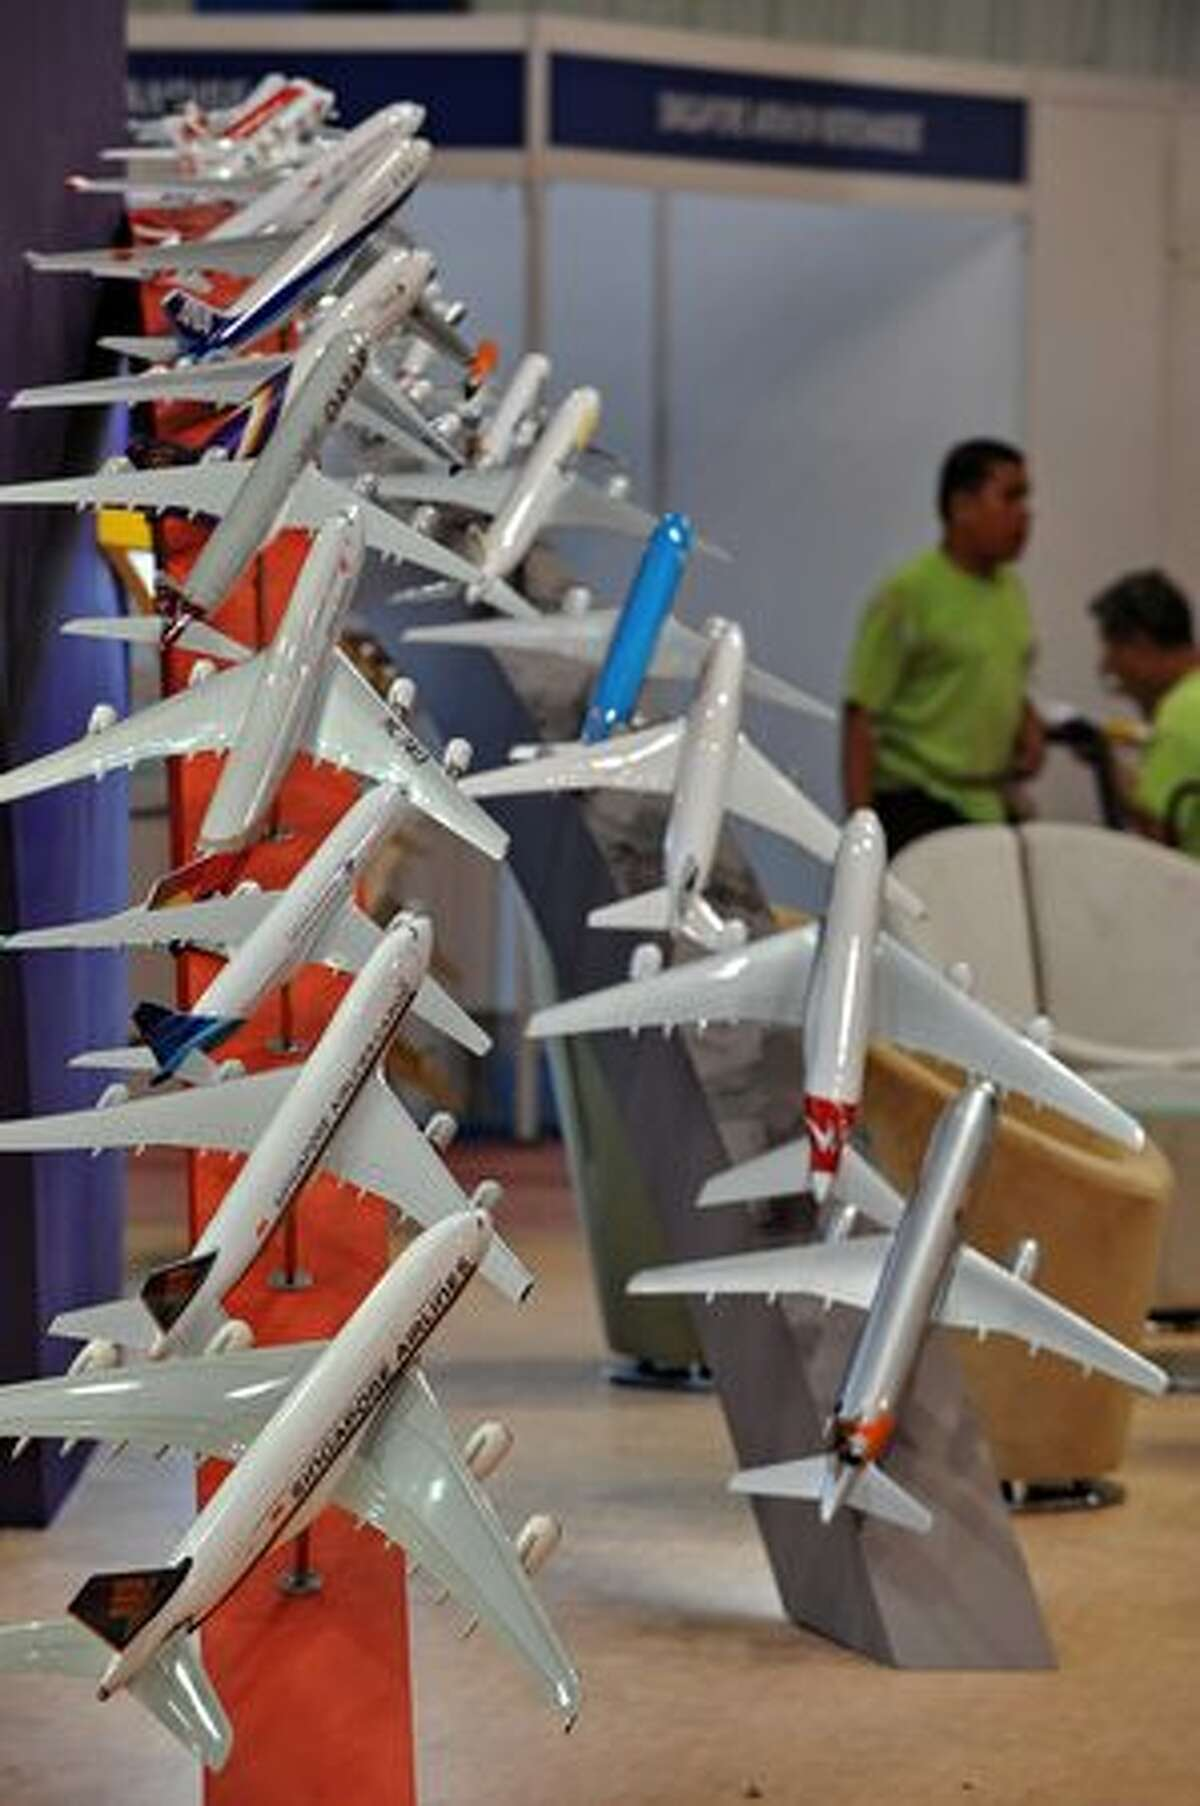 Models of various airlines' planes are displayed at the Singapore airshow on Feb. 1, 2010.